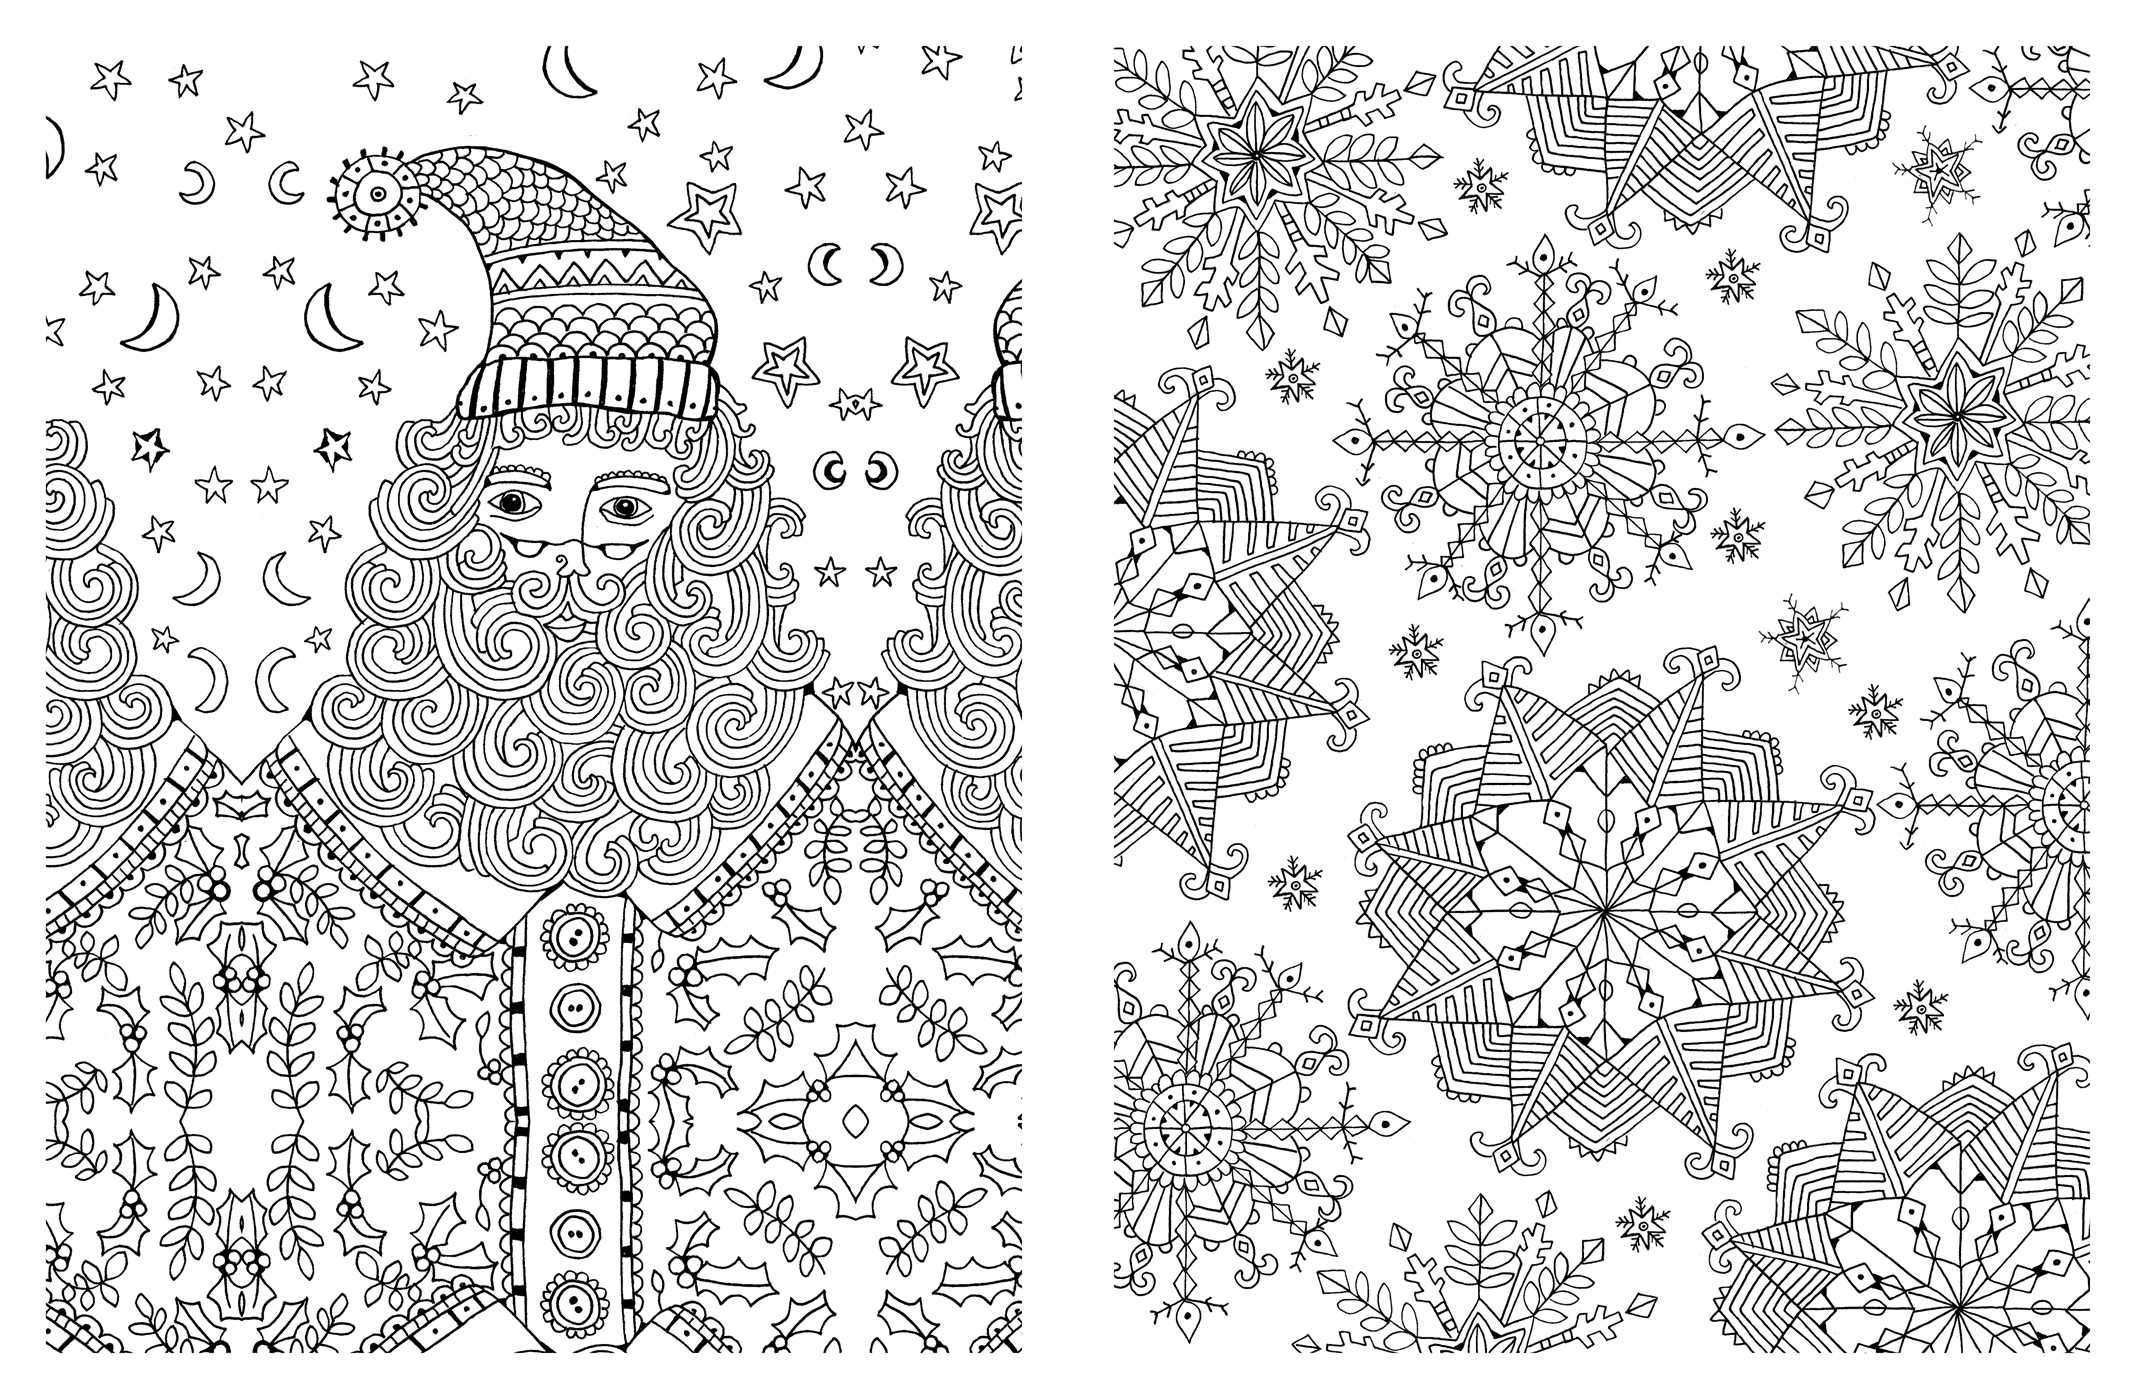 Christmas Colouring In Pages For Adults With Amazon Com Posh Adult Coloring Book Designs Fun